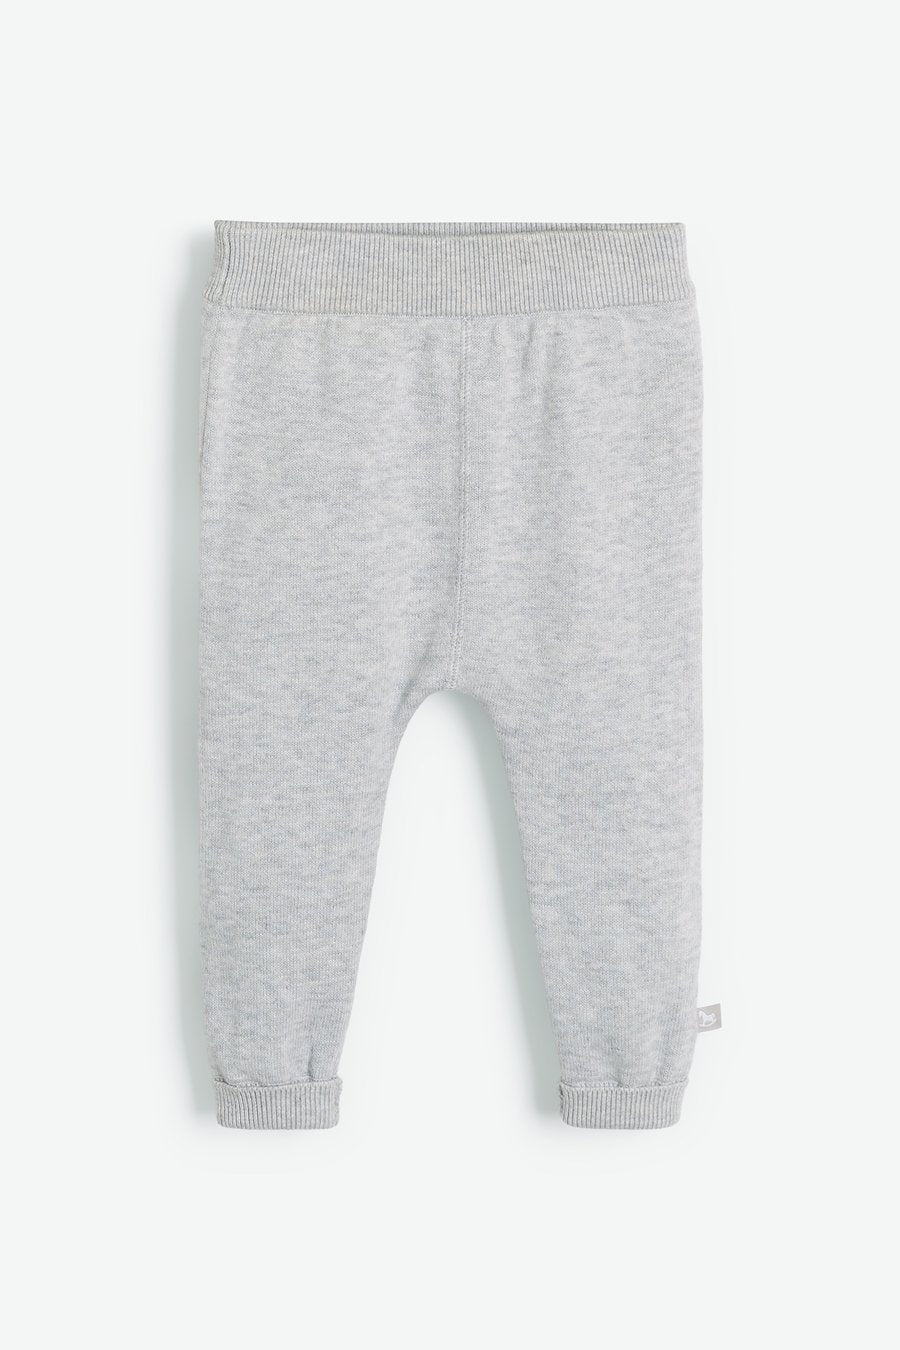 Grey cotton Rocking Horse Pants